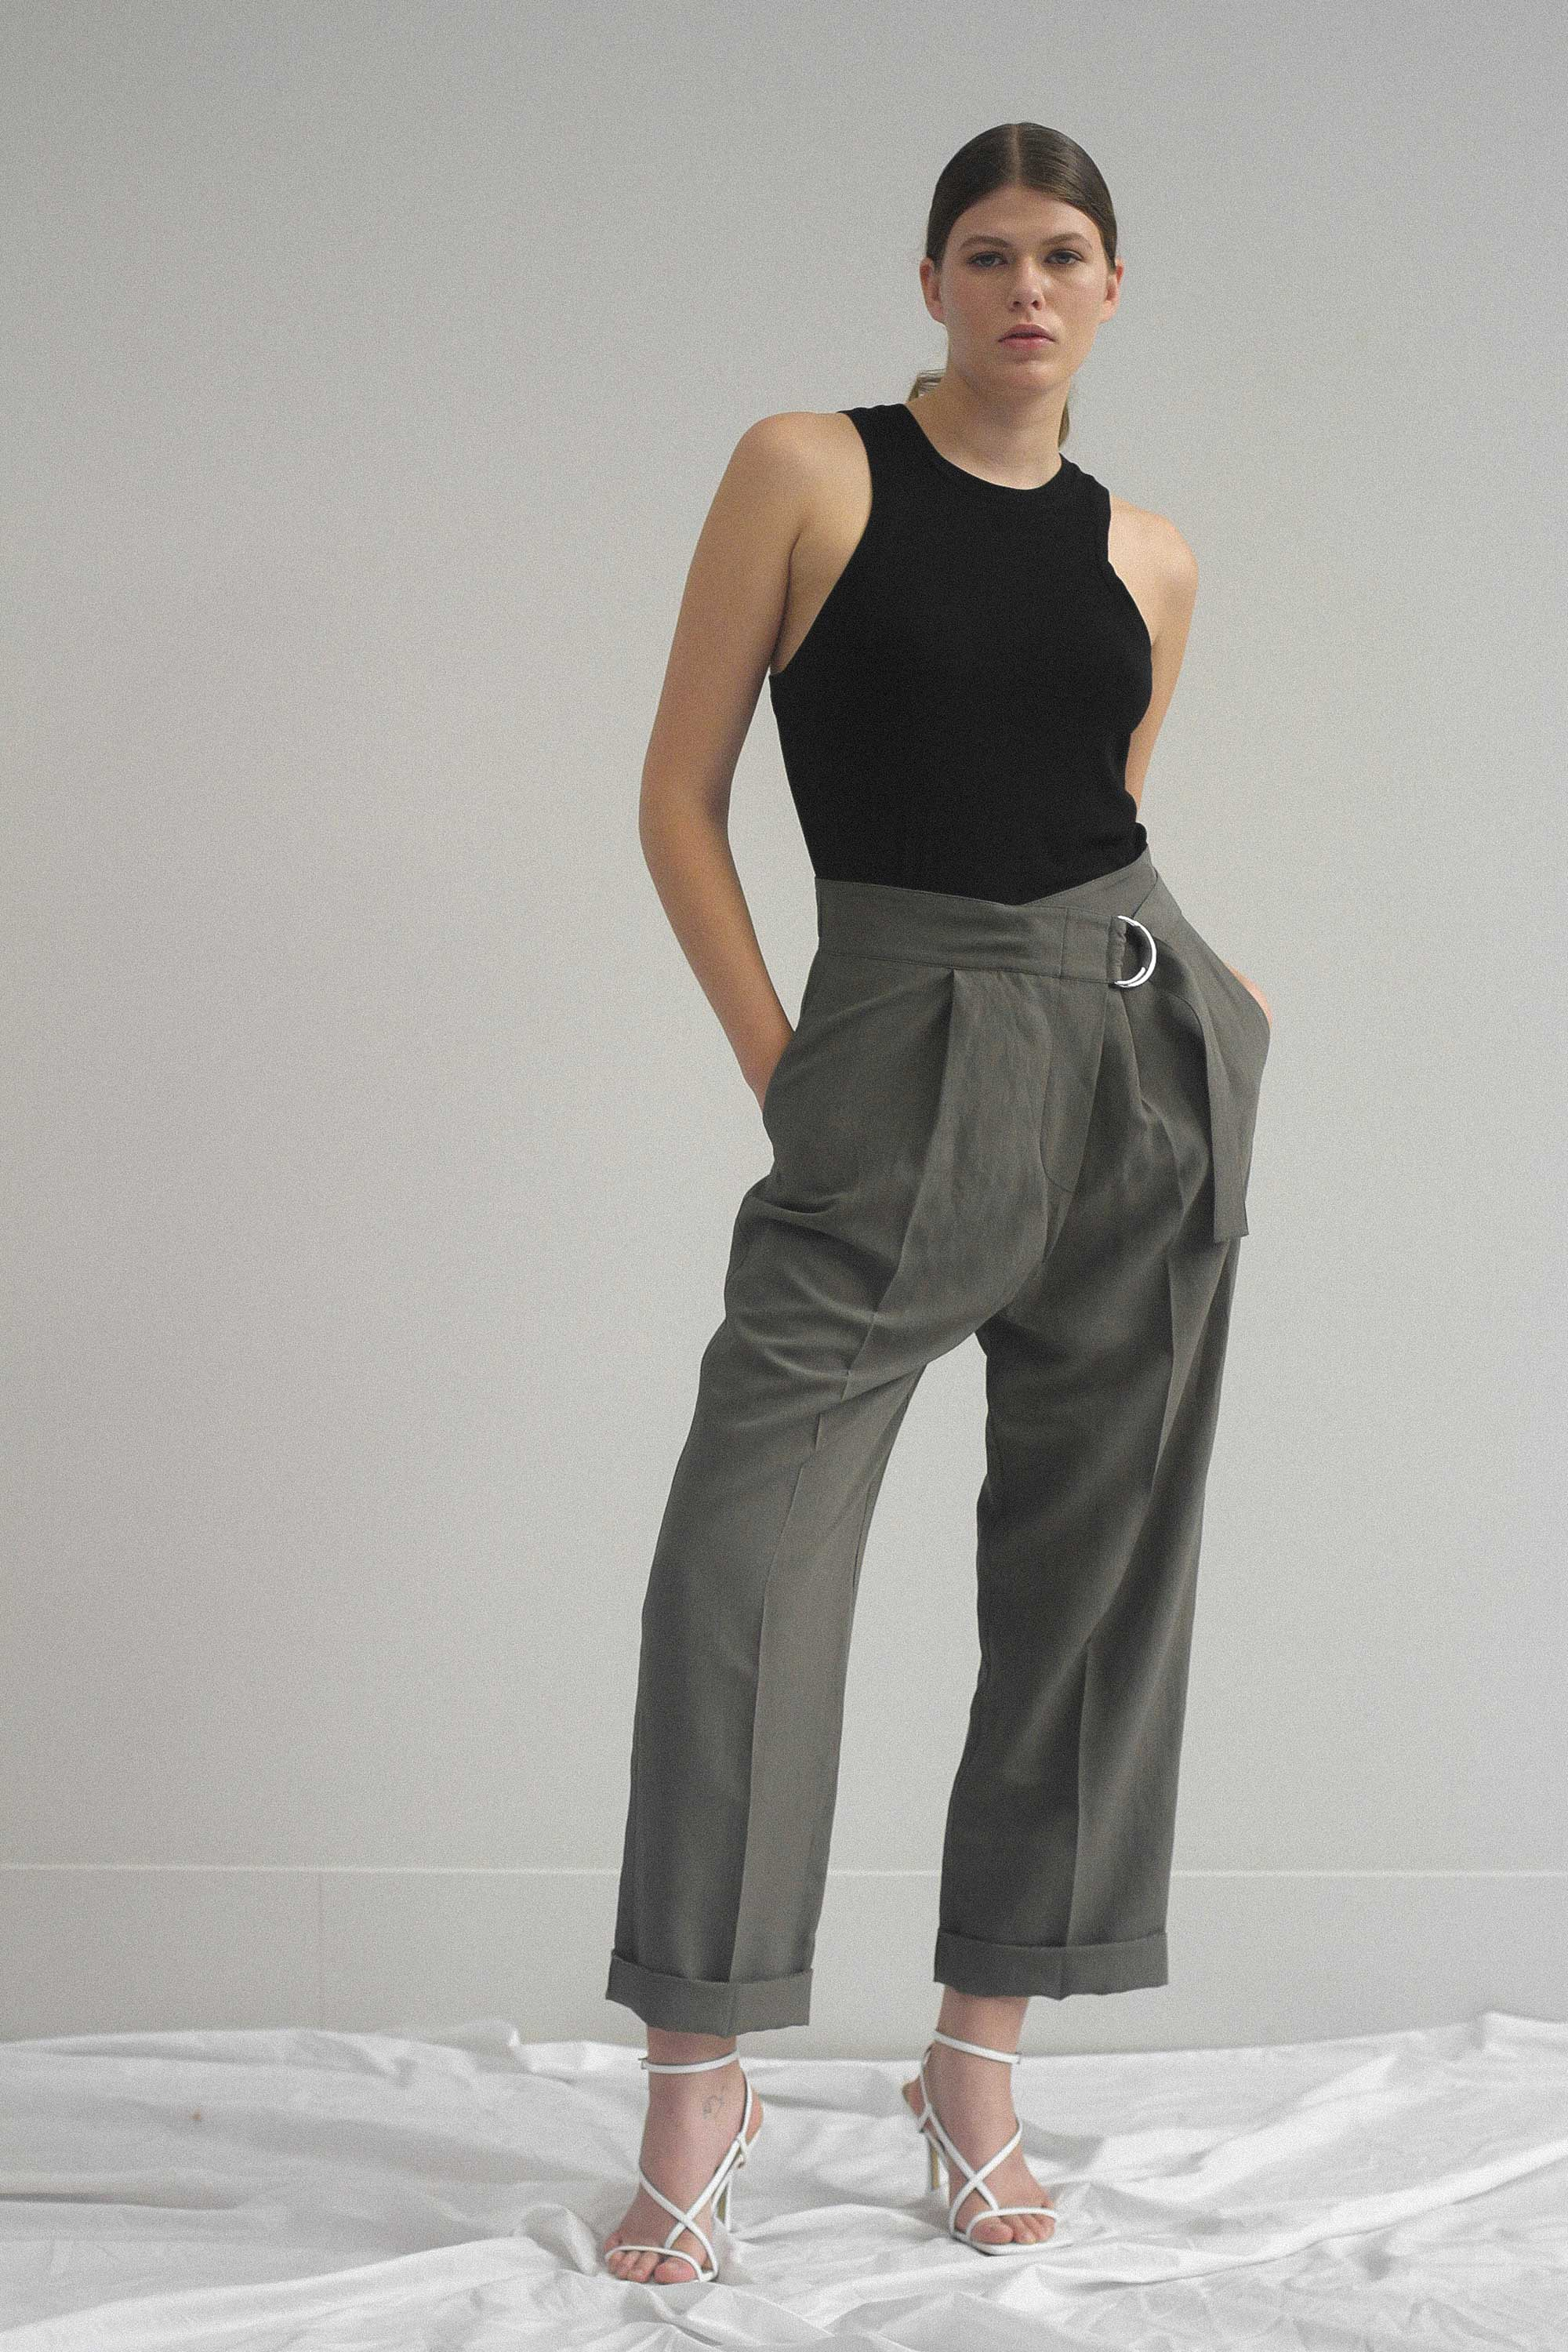 Barball Pant Khaki Ricochet SS20 Collection NZ Sustainable Fashion Design